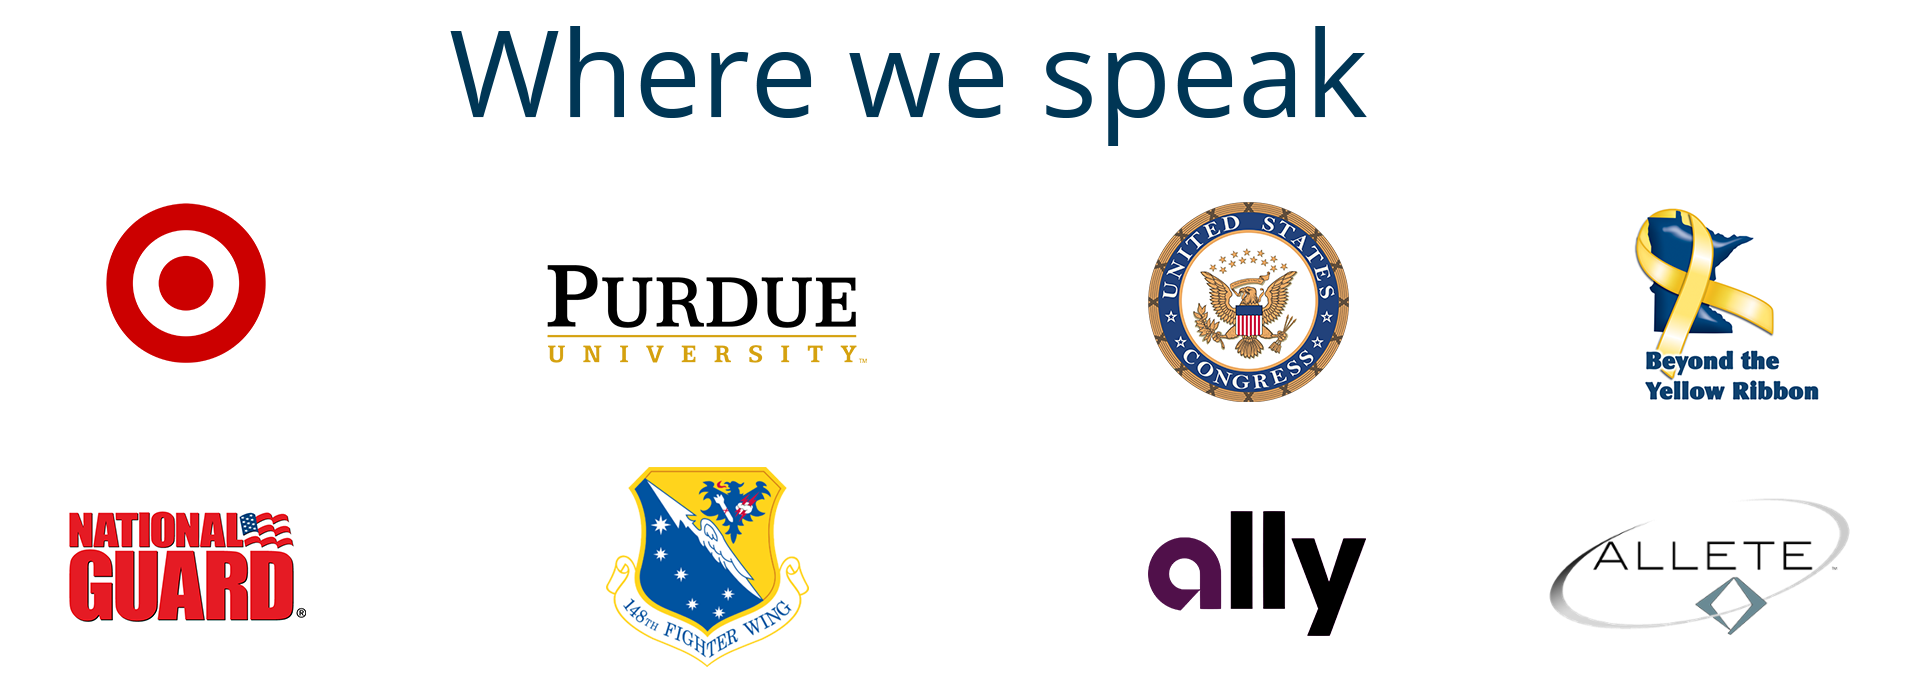 Where we speak logos